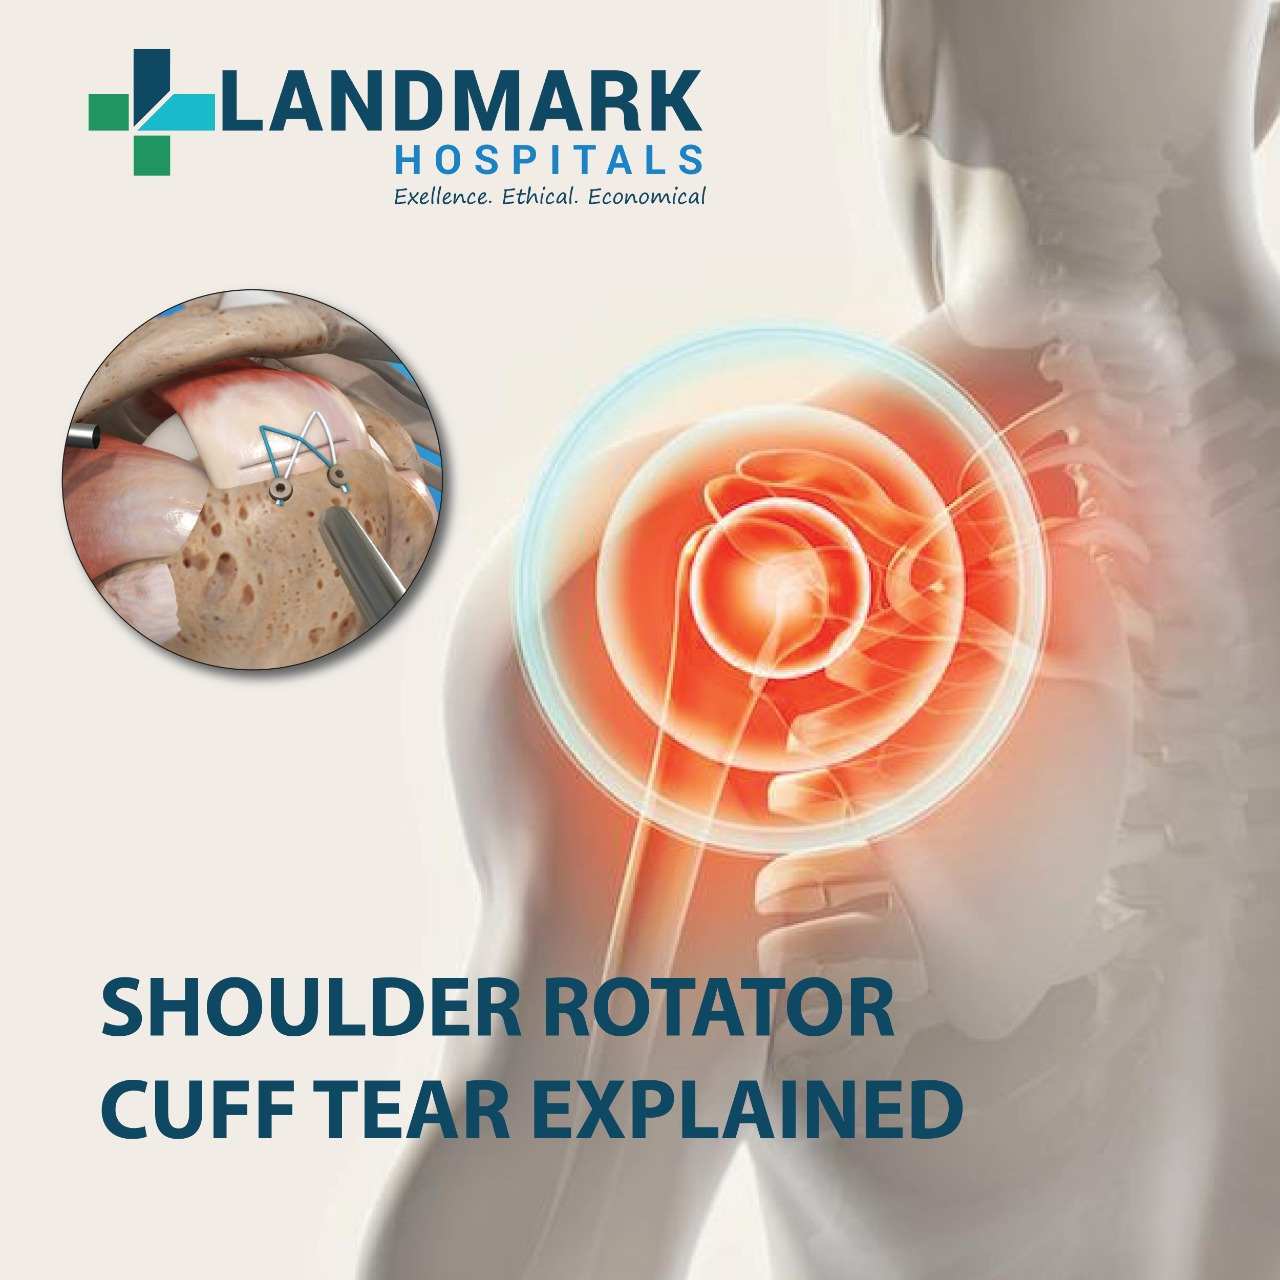 Shoulder Rotator Cuff Tear: When to get the surgery and recovery